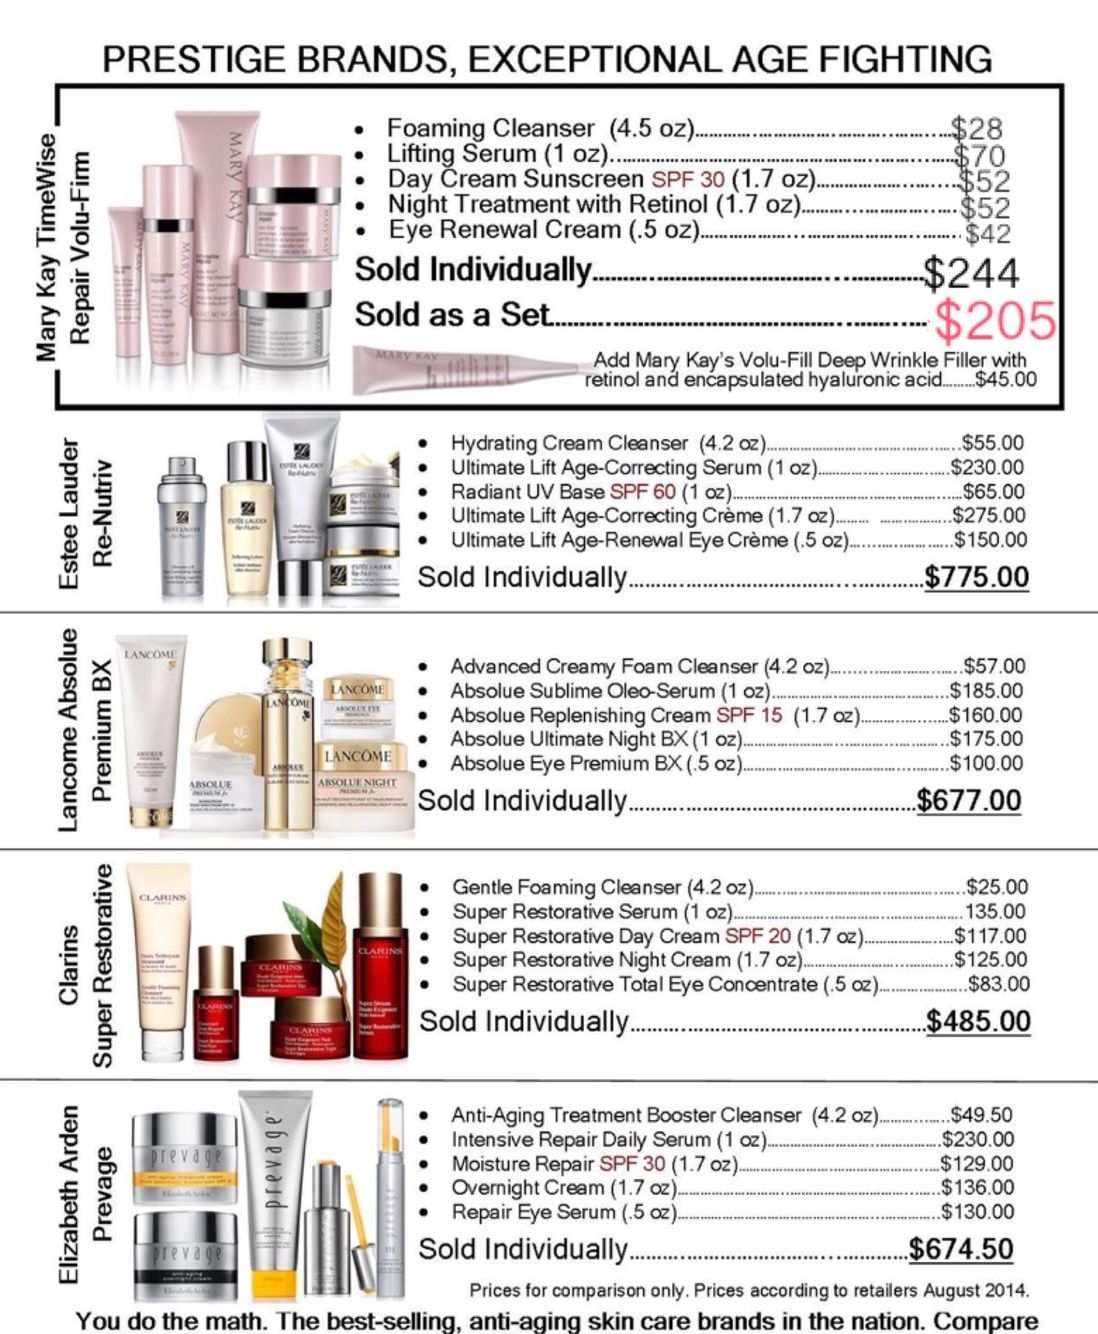 Mary Kay Vs Leading Skin Care One Of Mary Kay S 1 Selling Products Because It Works Timewise Repair Skin Care Wrinkles Anti Aging Skin Products Mary Kay